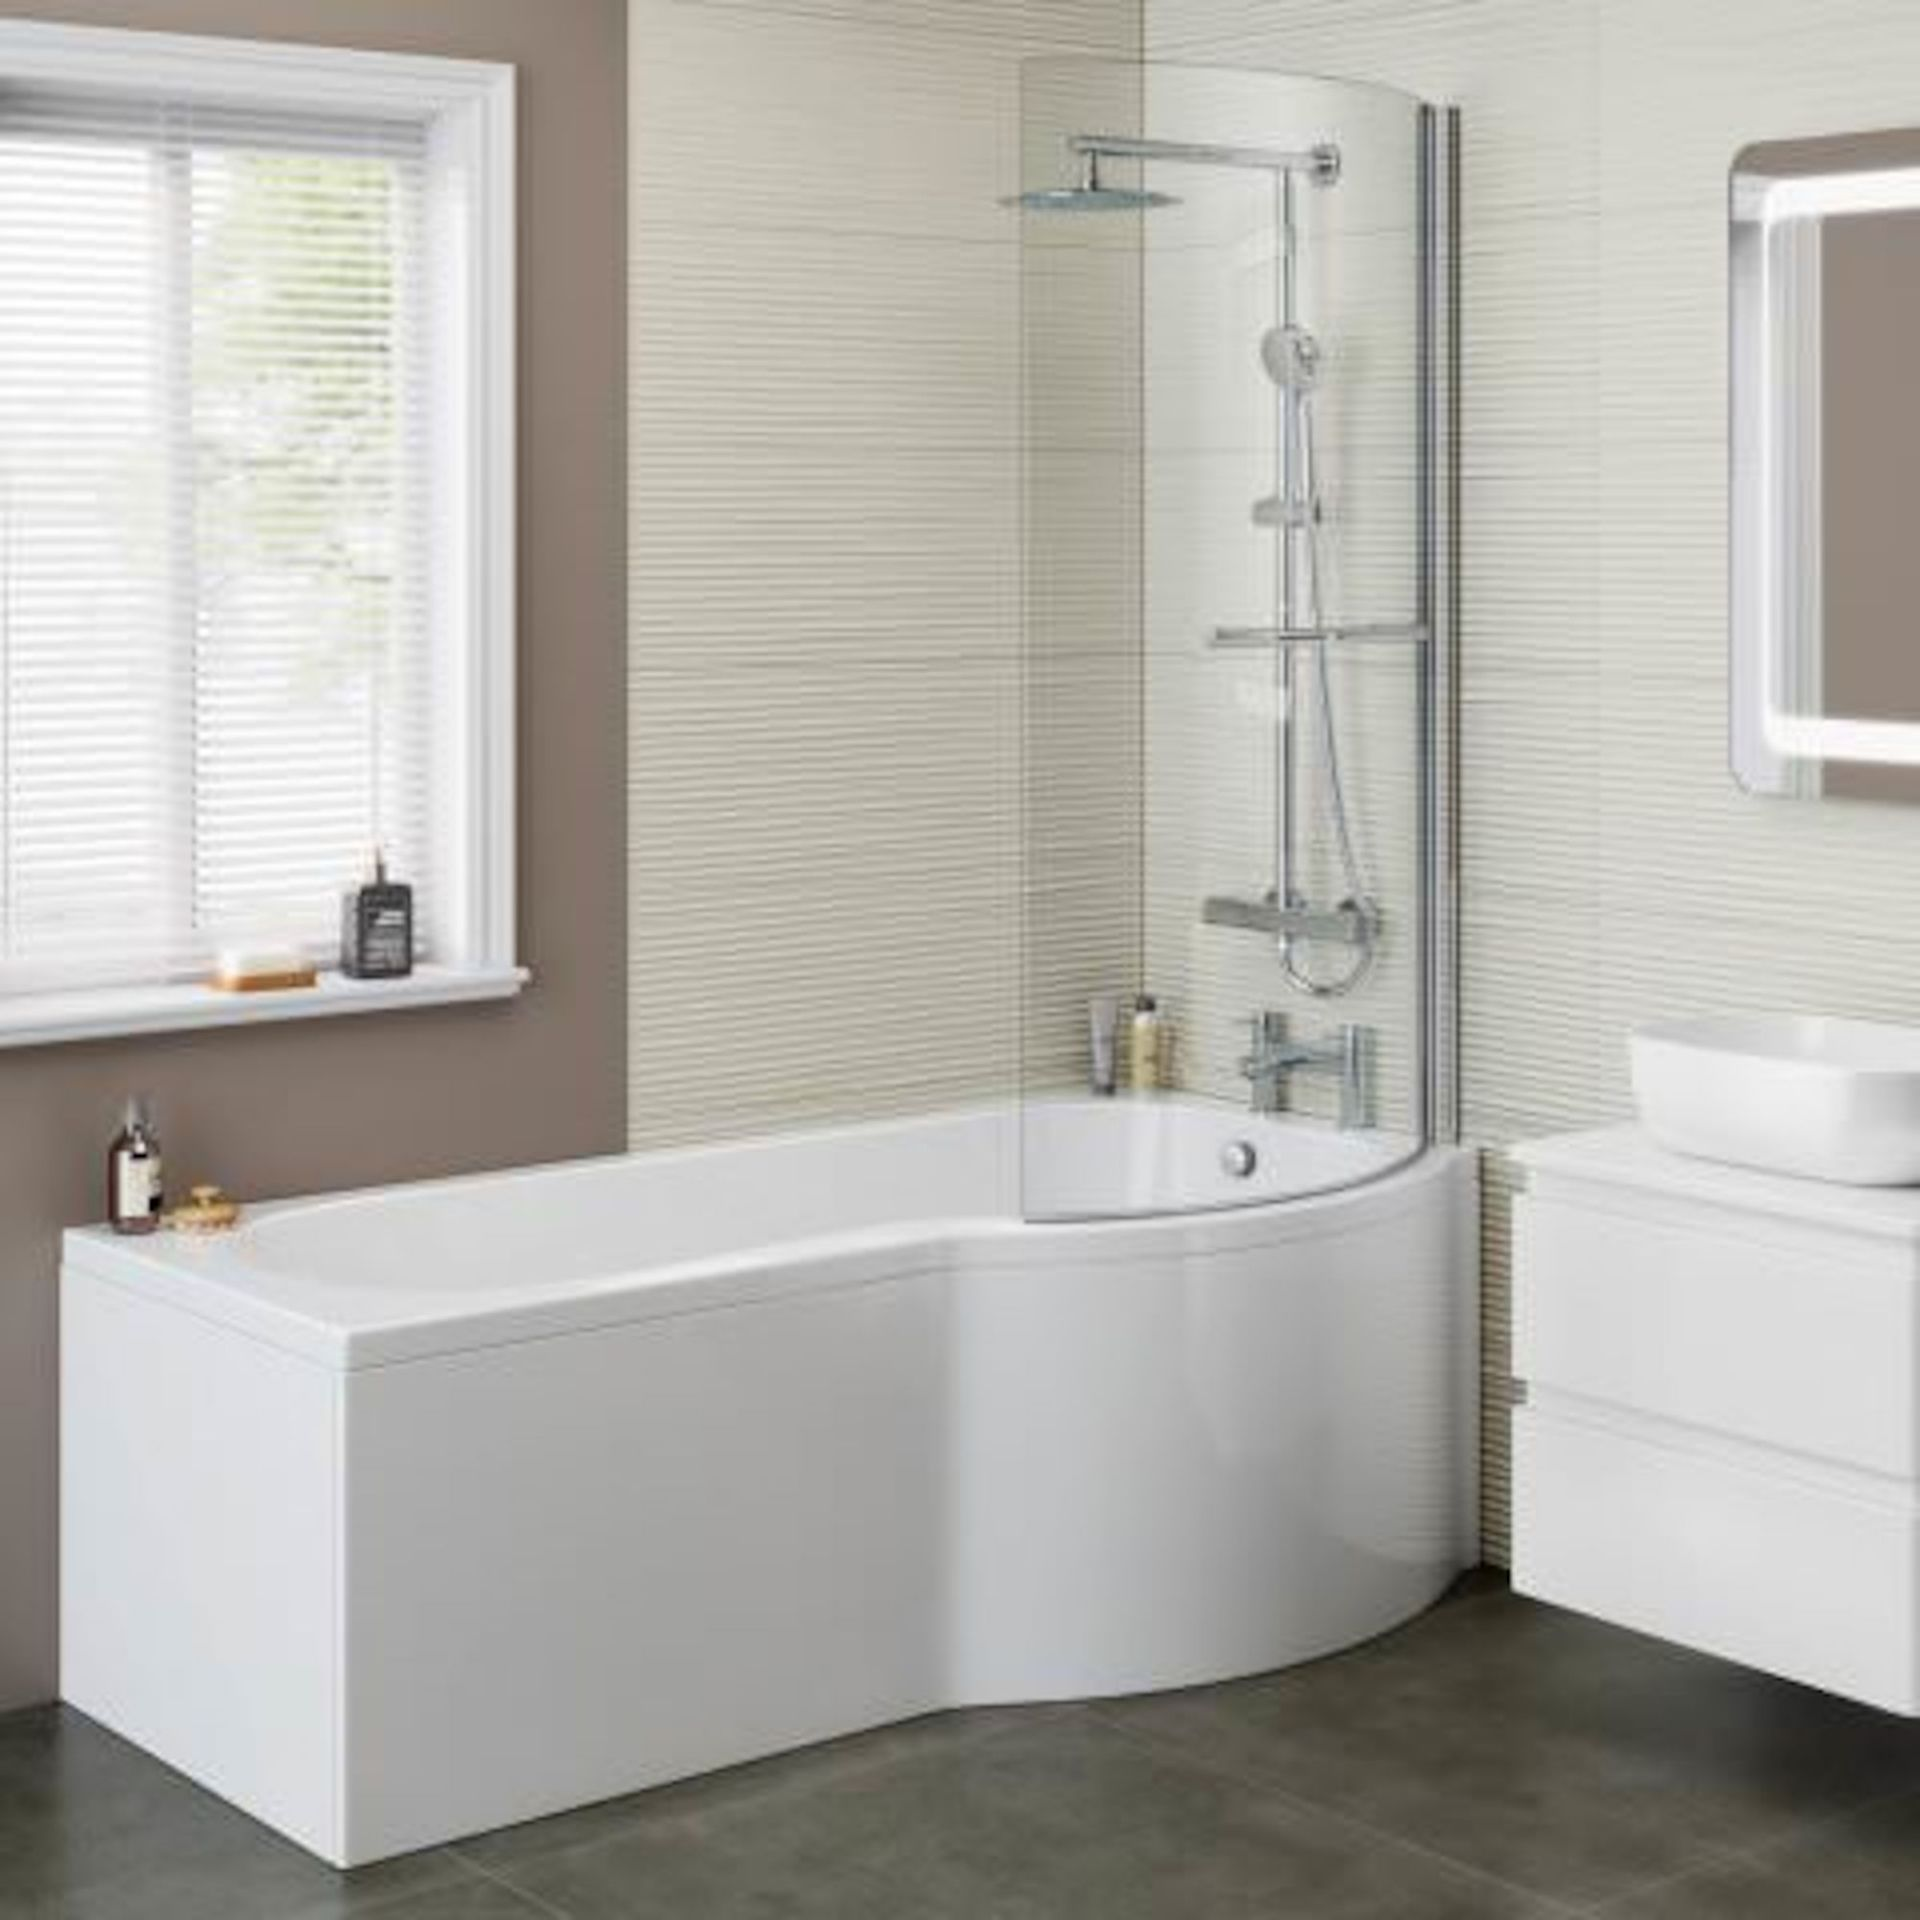 Lot 41 - (XX27) 1700x850mm - Right Hand P-Shaped Bath with Front Panel and bath screen. RRP £399.99. Id...